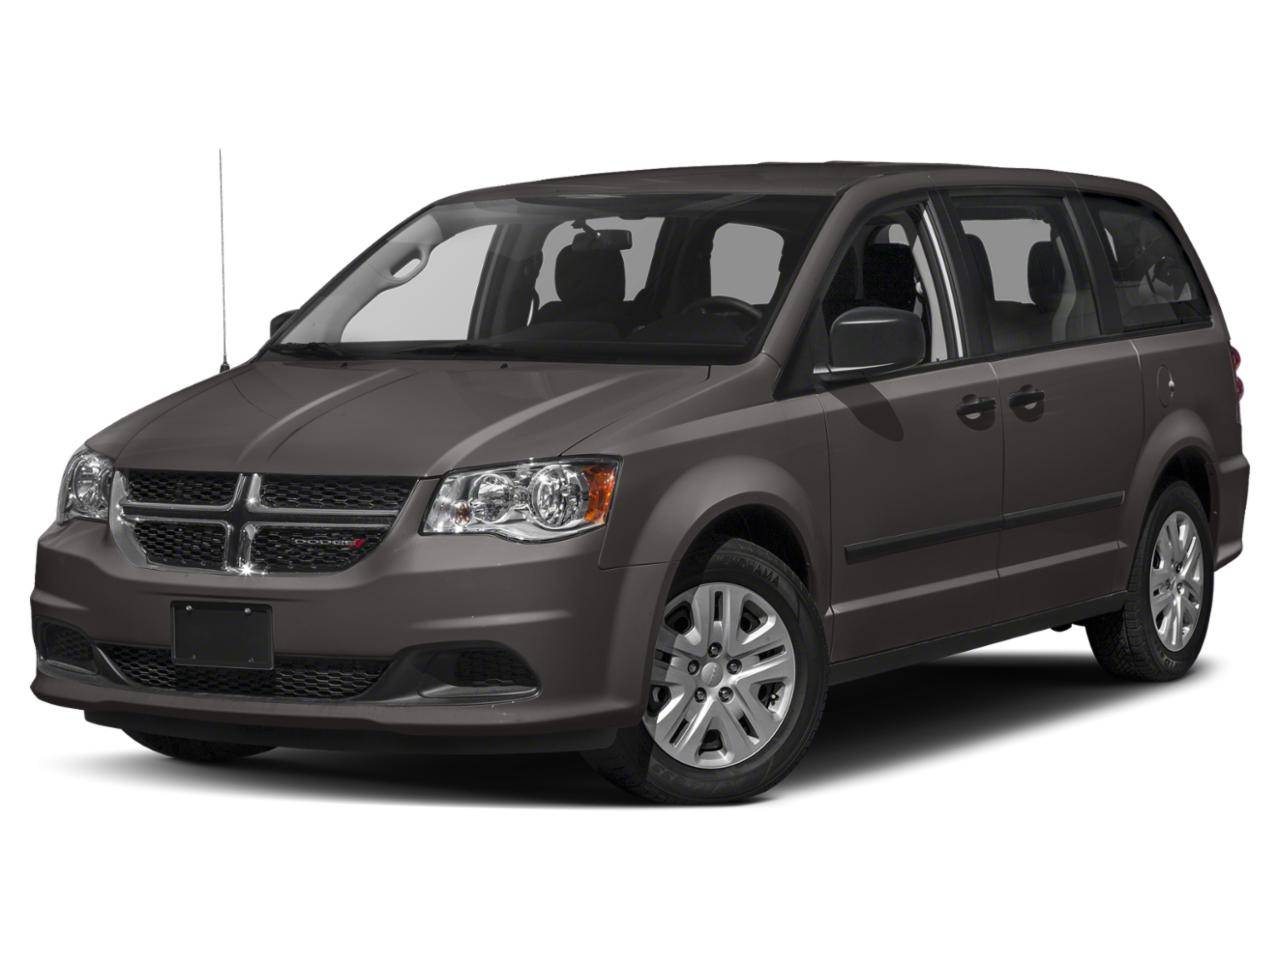 2019 Dodge Grand Caravan Vehicle Photo in Ennis, TX 75119